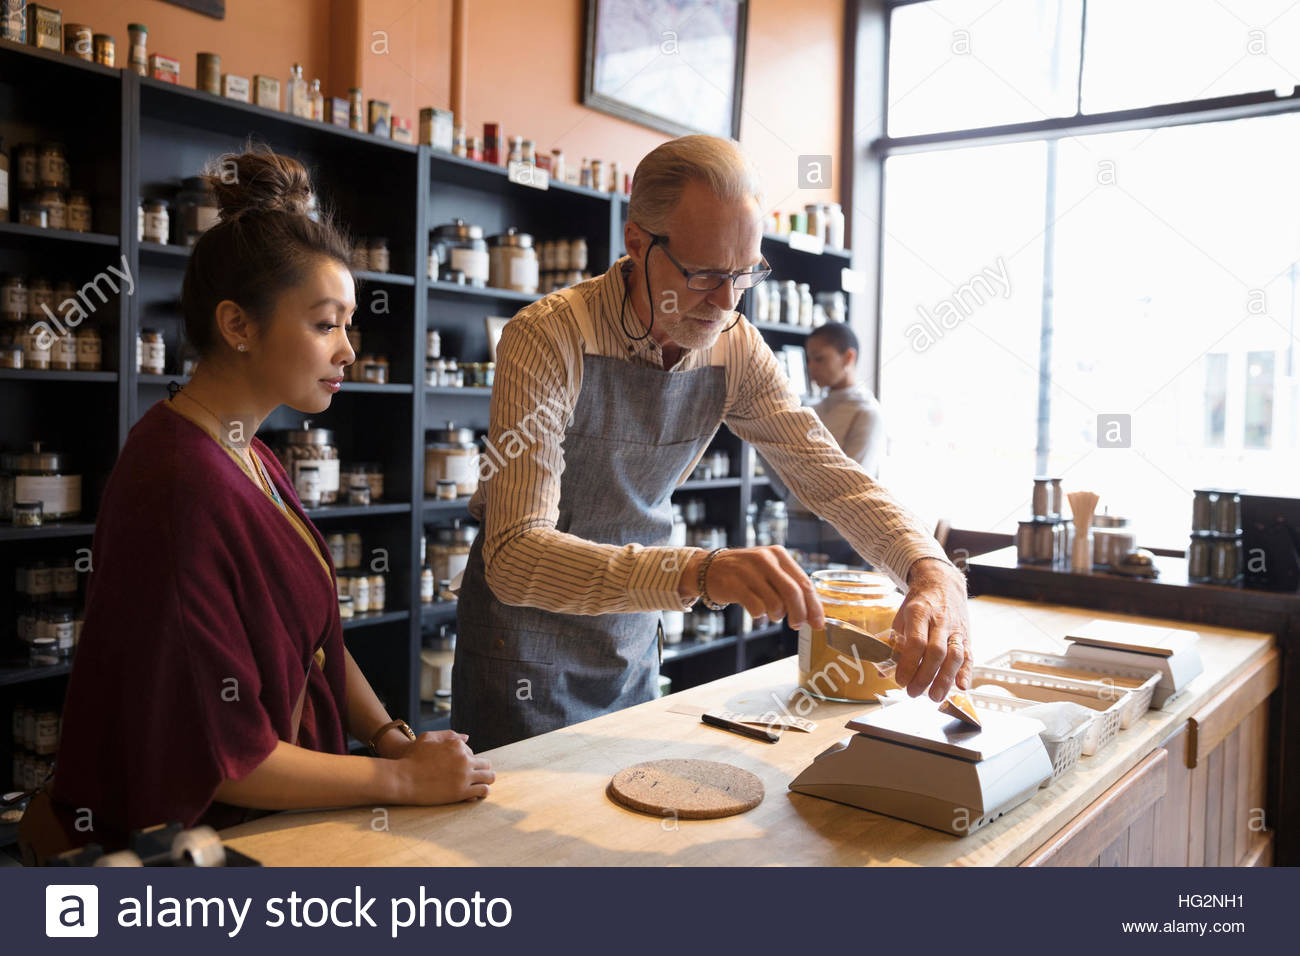 Male shop owner scooping and weighing saffron for female customer at counter - Stock Image